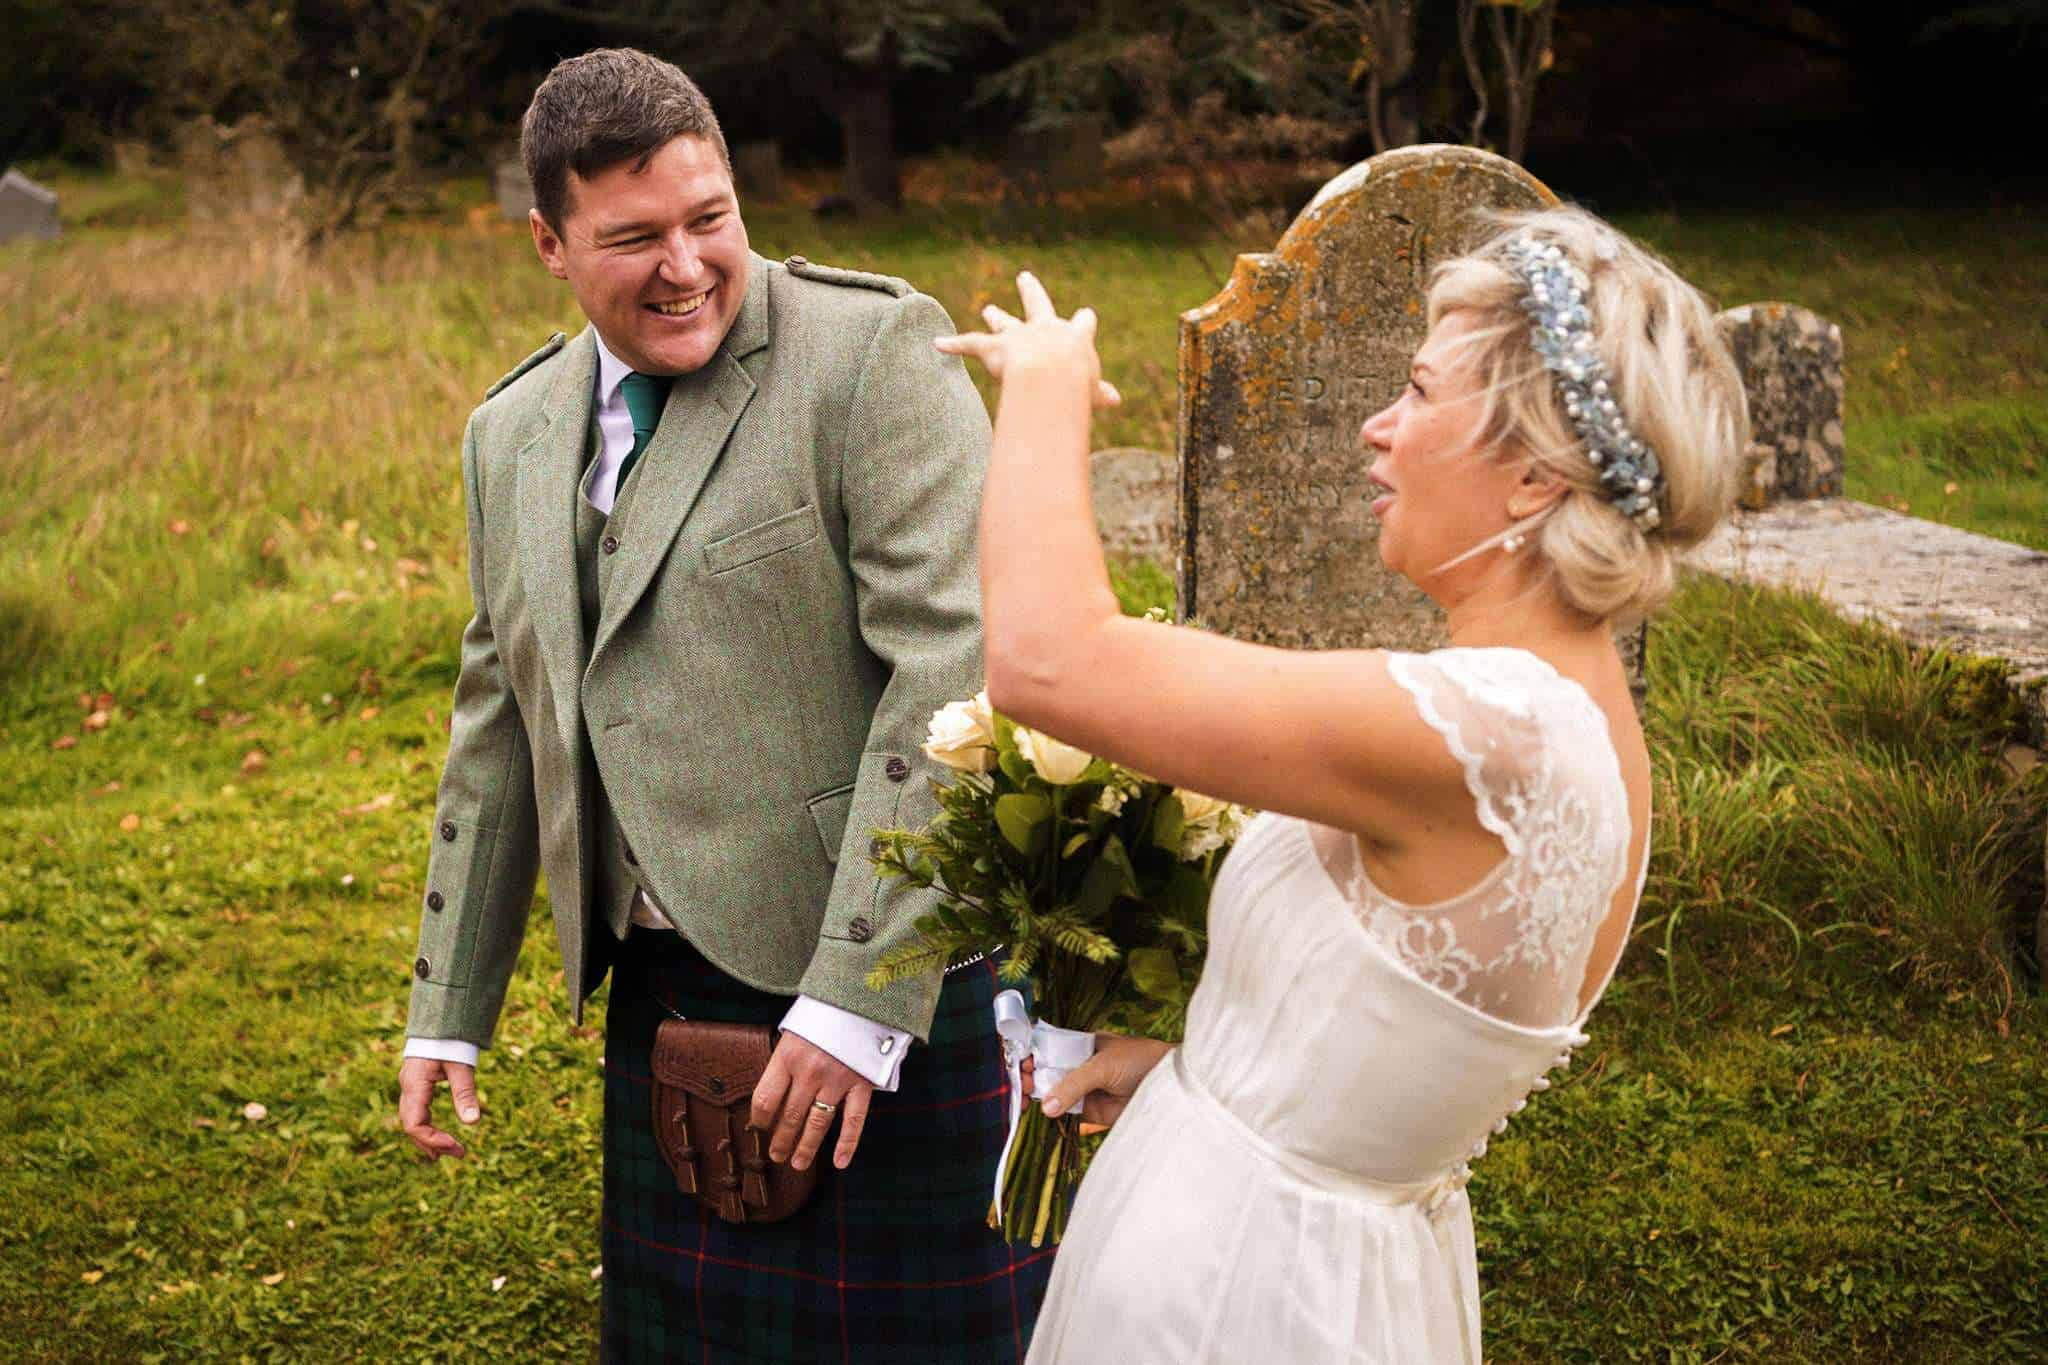 A bride and groom share a joke after just getting married